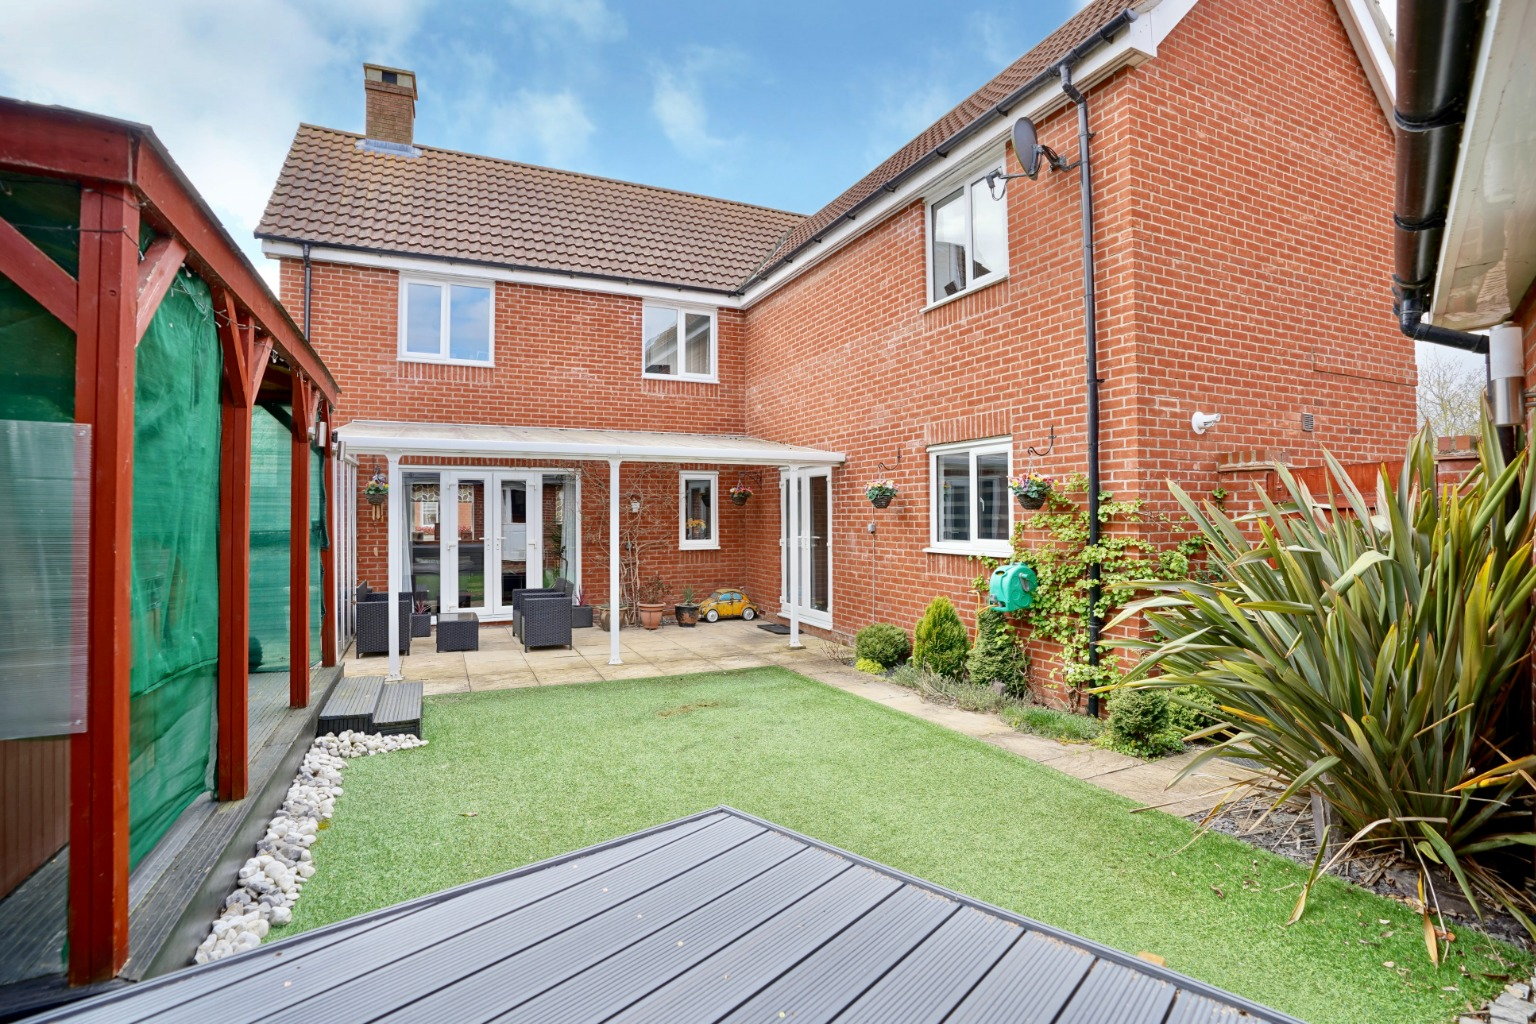 4 bed detached house for sale in Daffodil Close, St. Neots  - Property Image 12